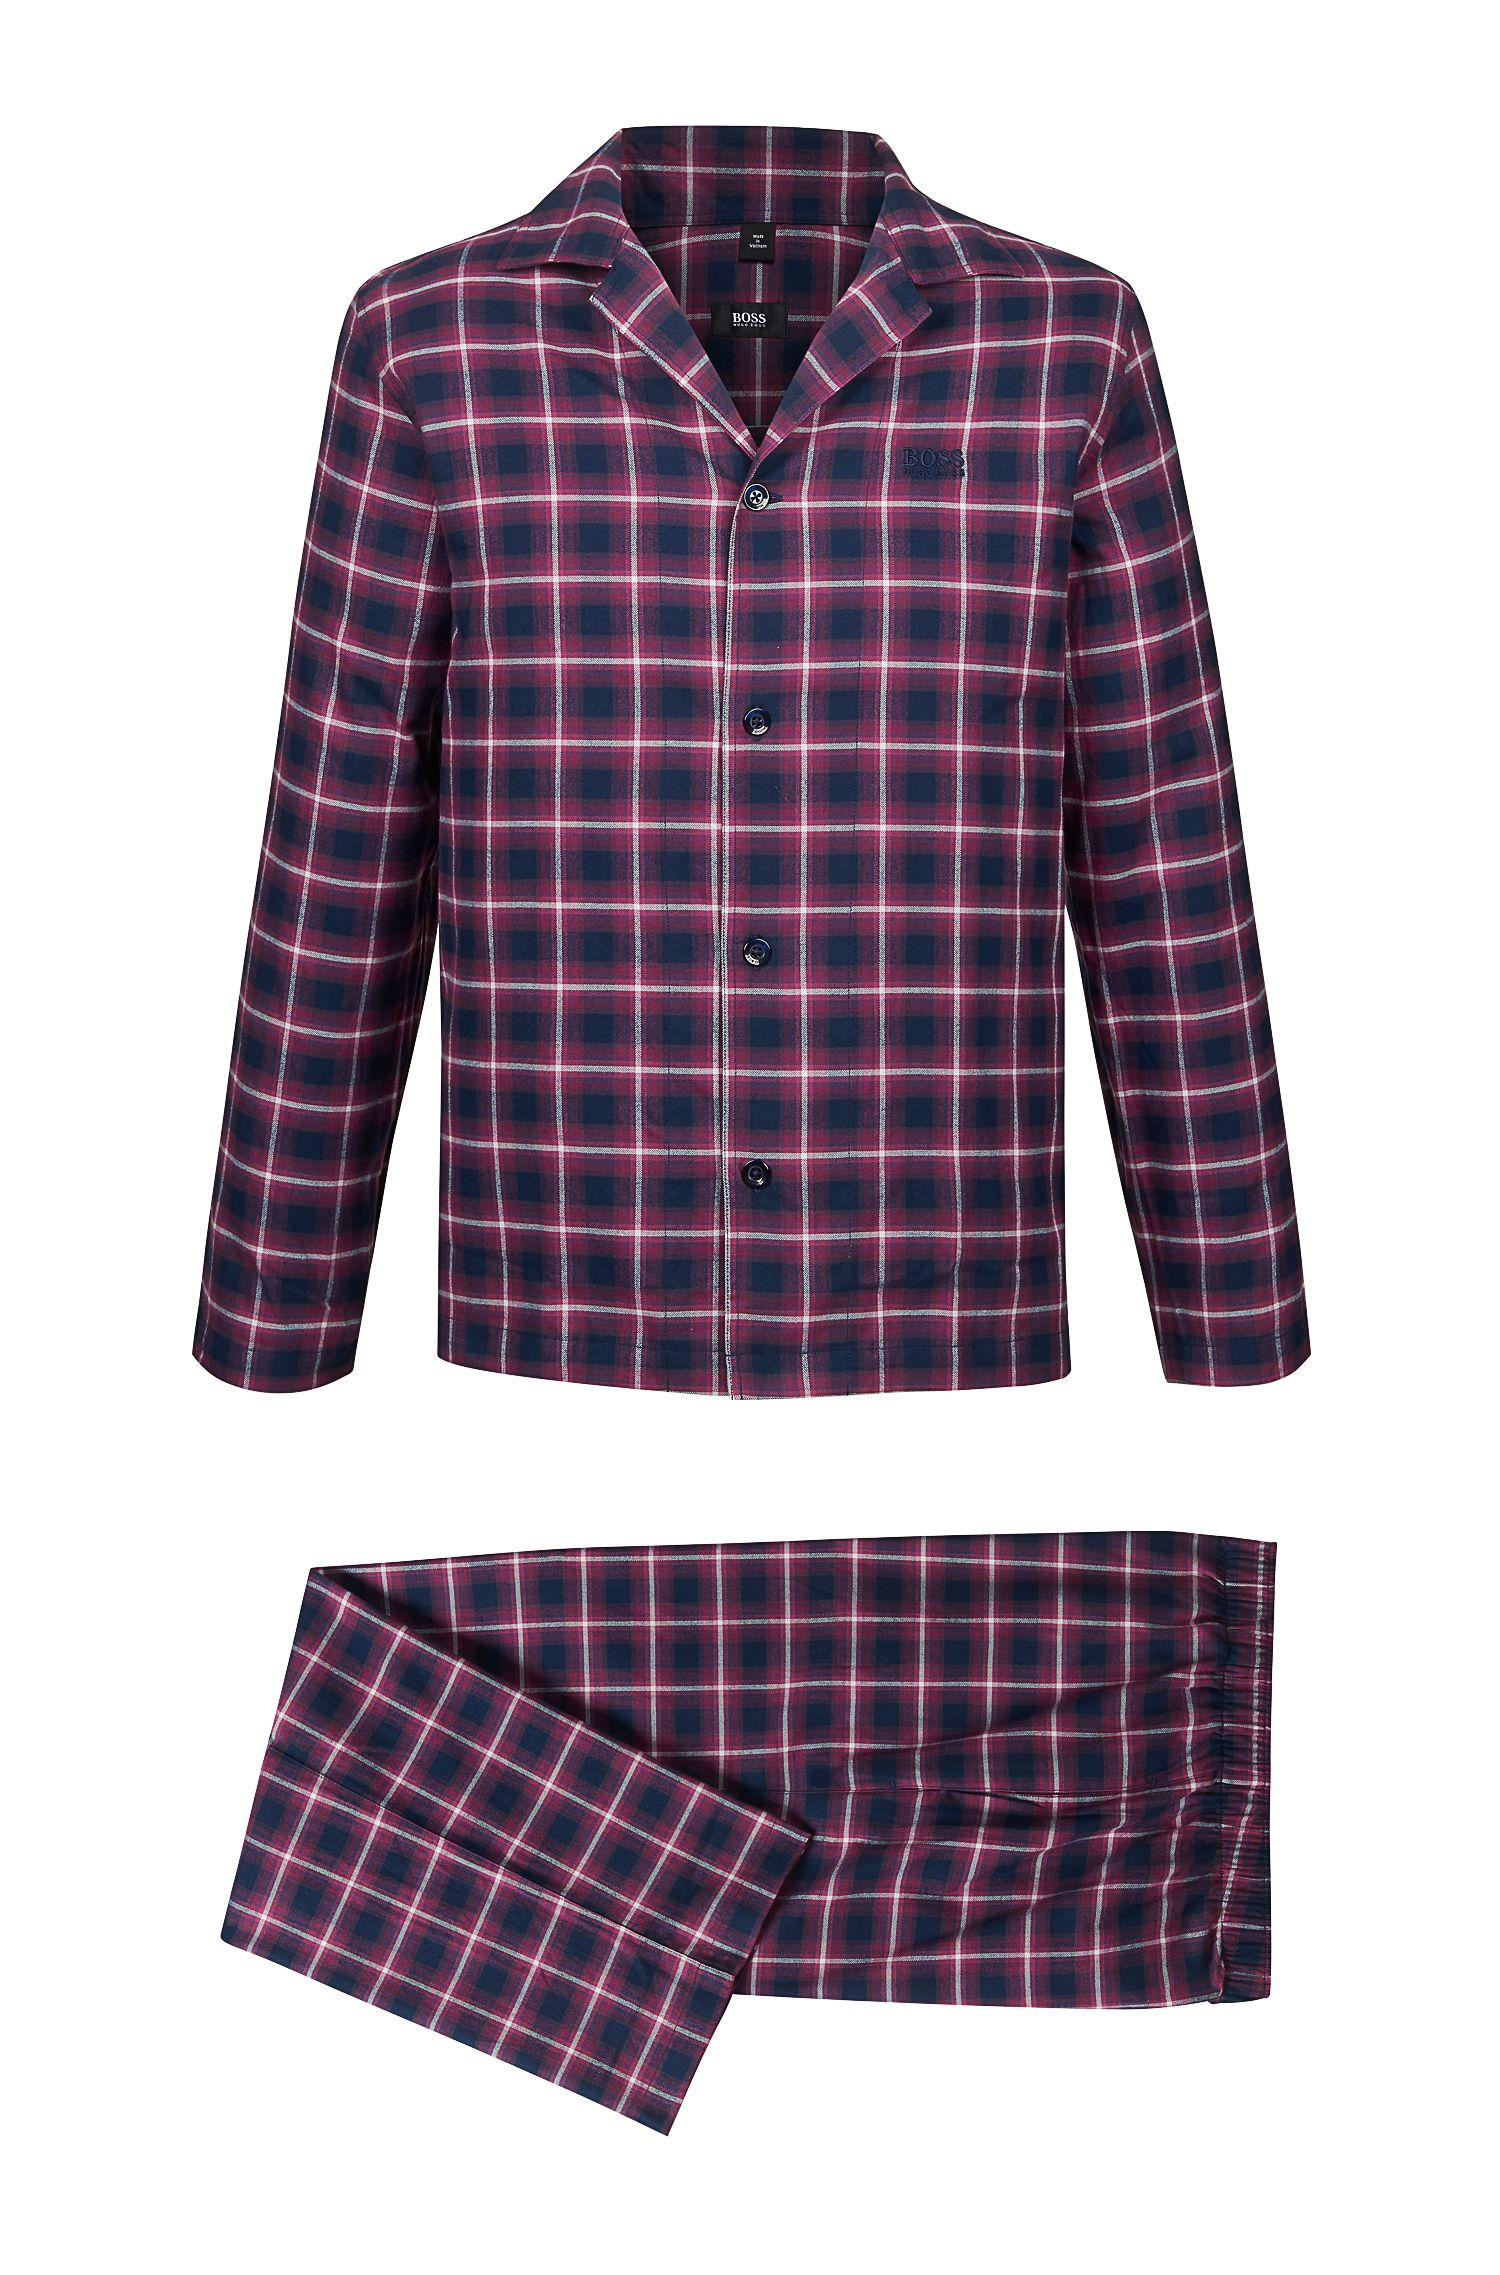 'Pyjama' | Cotton Flannel Pajama Set